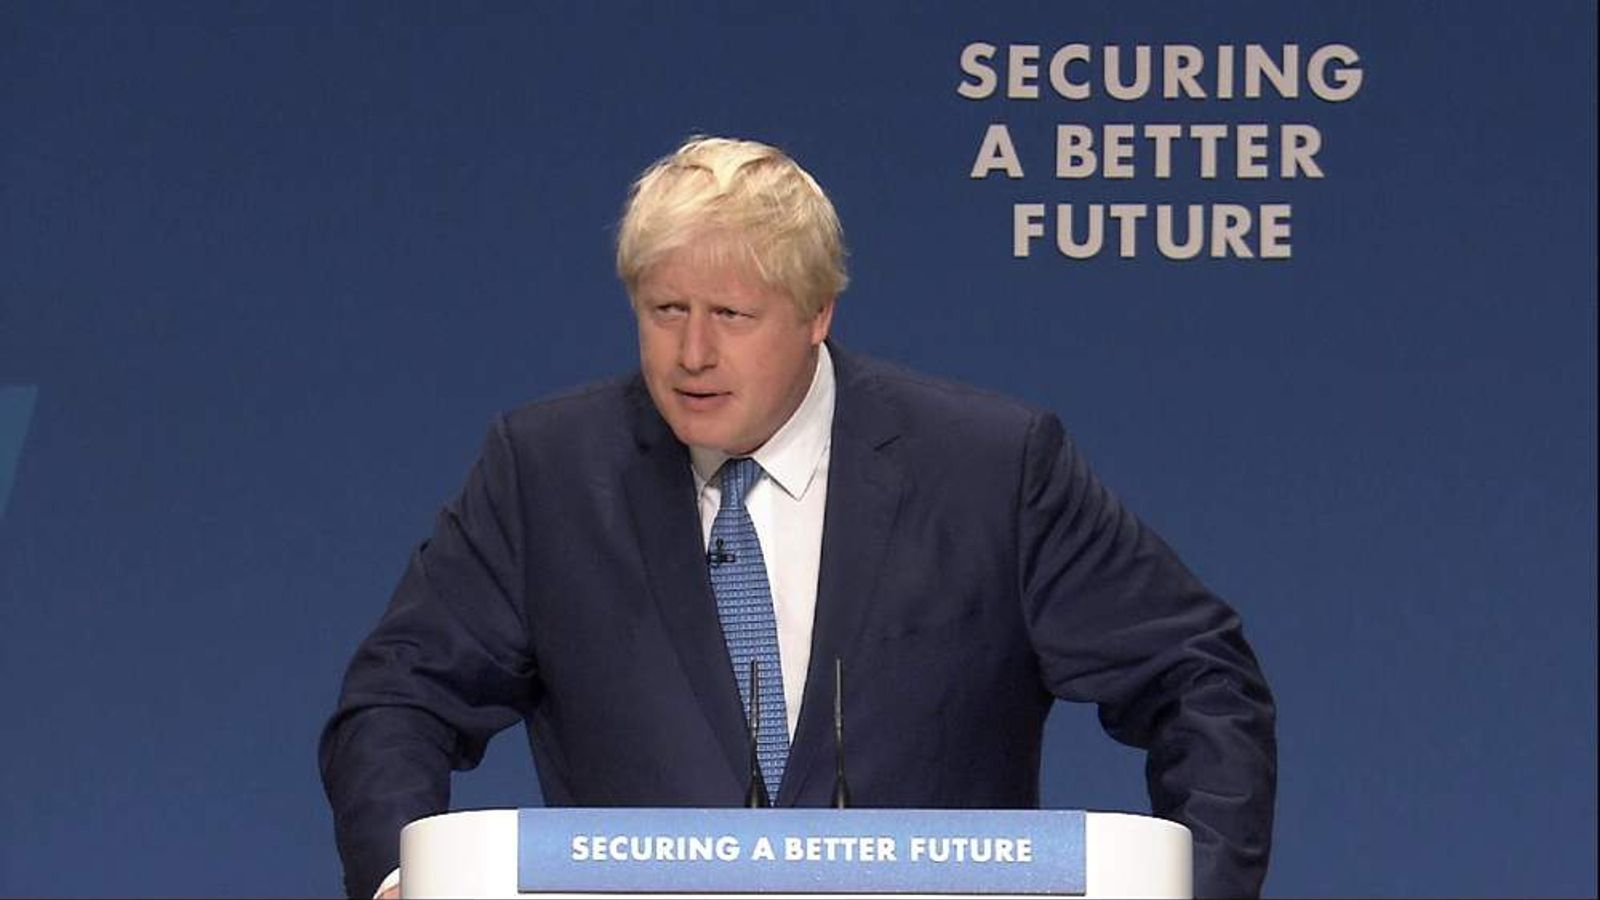 Boris Johnson speaks at the Conservative Party conference